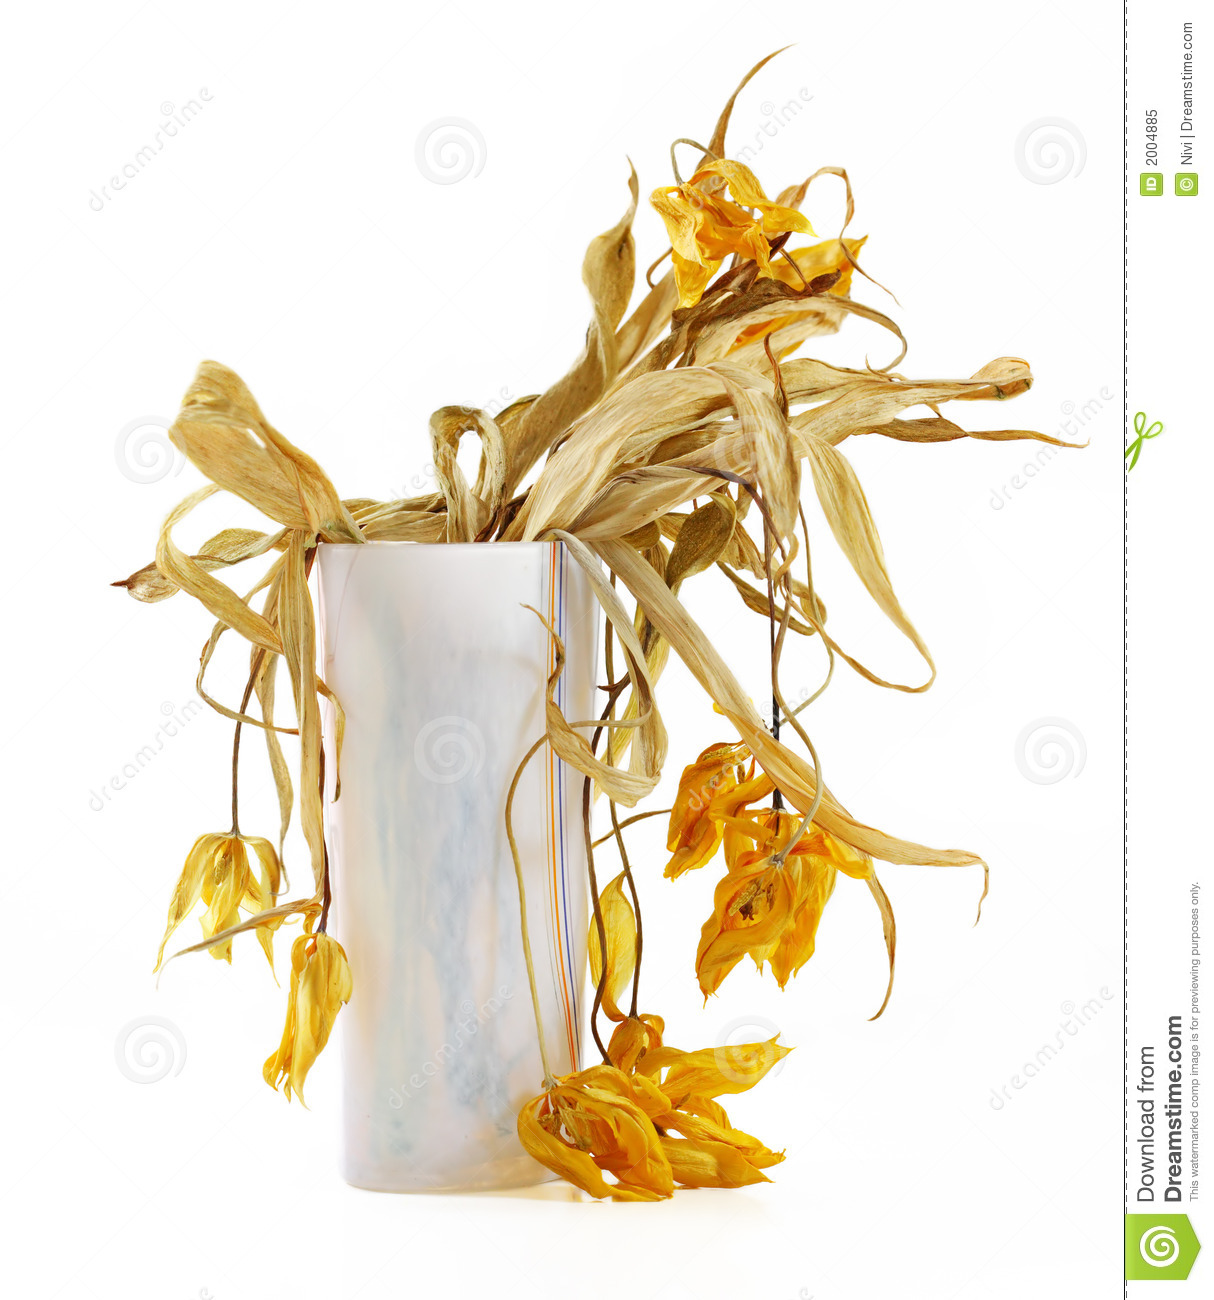 clipart dead flowers - photo #7